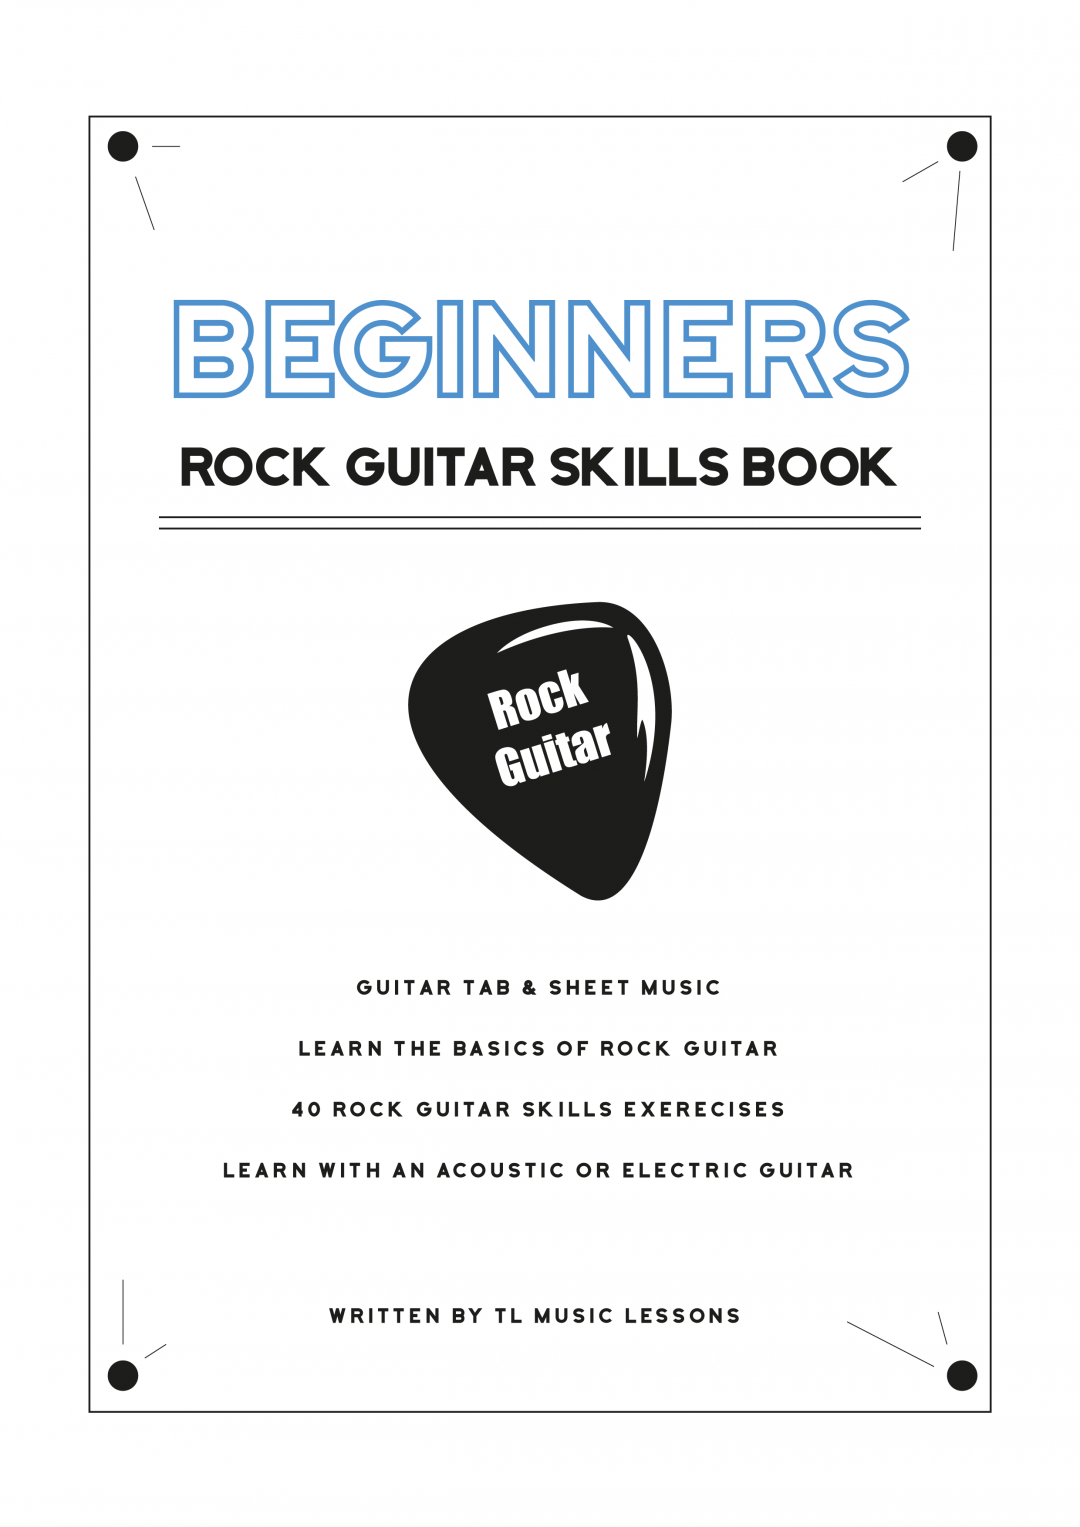 Beginners Rock Guitar Skills Book